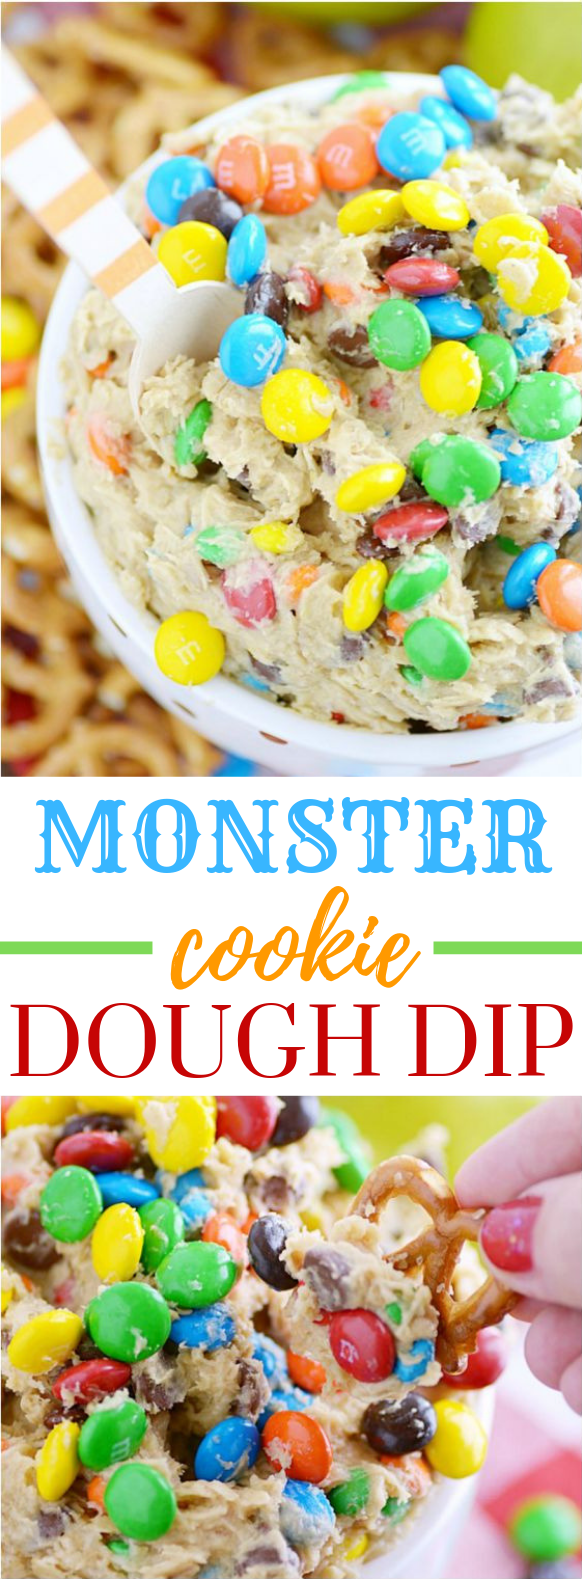 Monster Cookie Dough Dip (the original recipe) #Dessert #Sweetdip